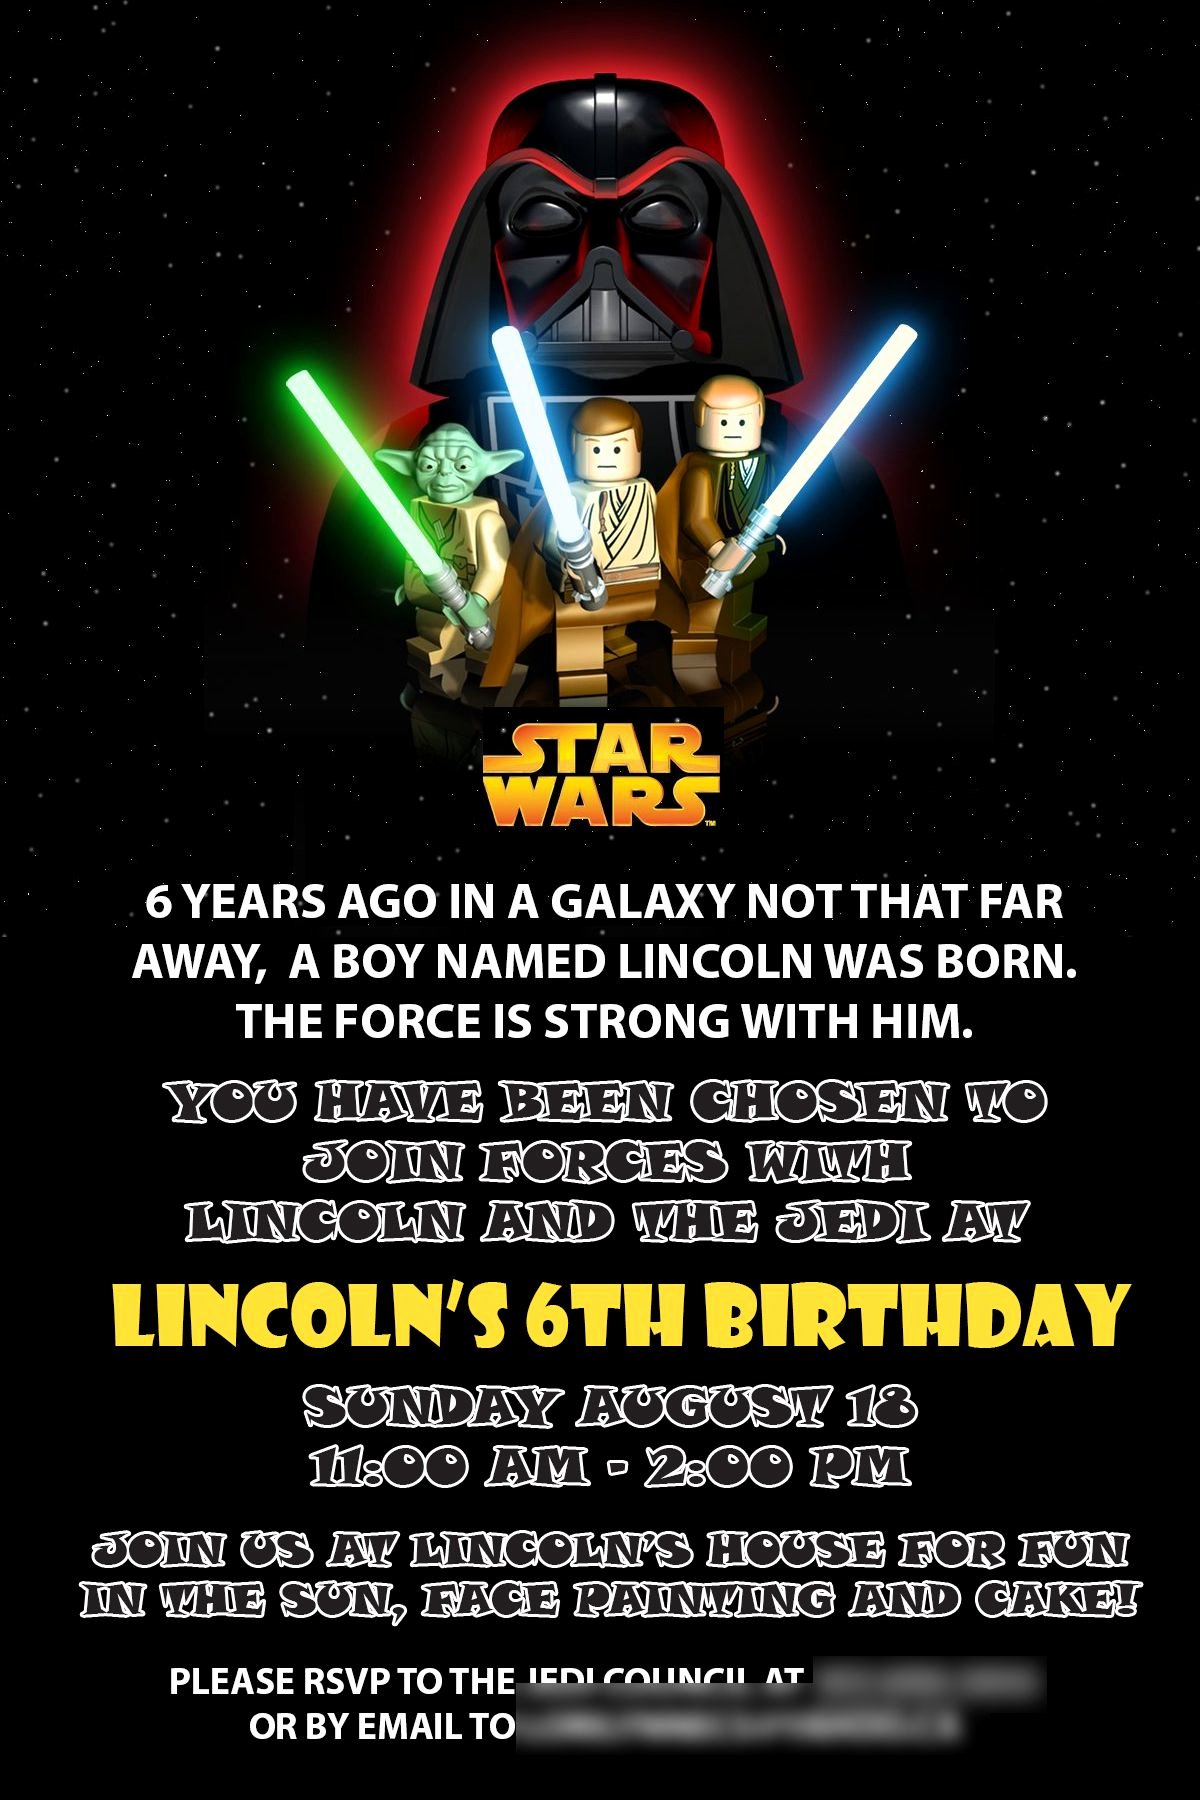 Star Wars Birthday Party Invitation Beautiful Starwars Birthday Invitation Star Wars